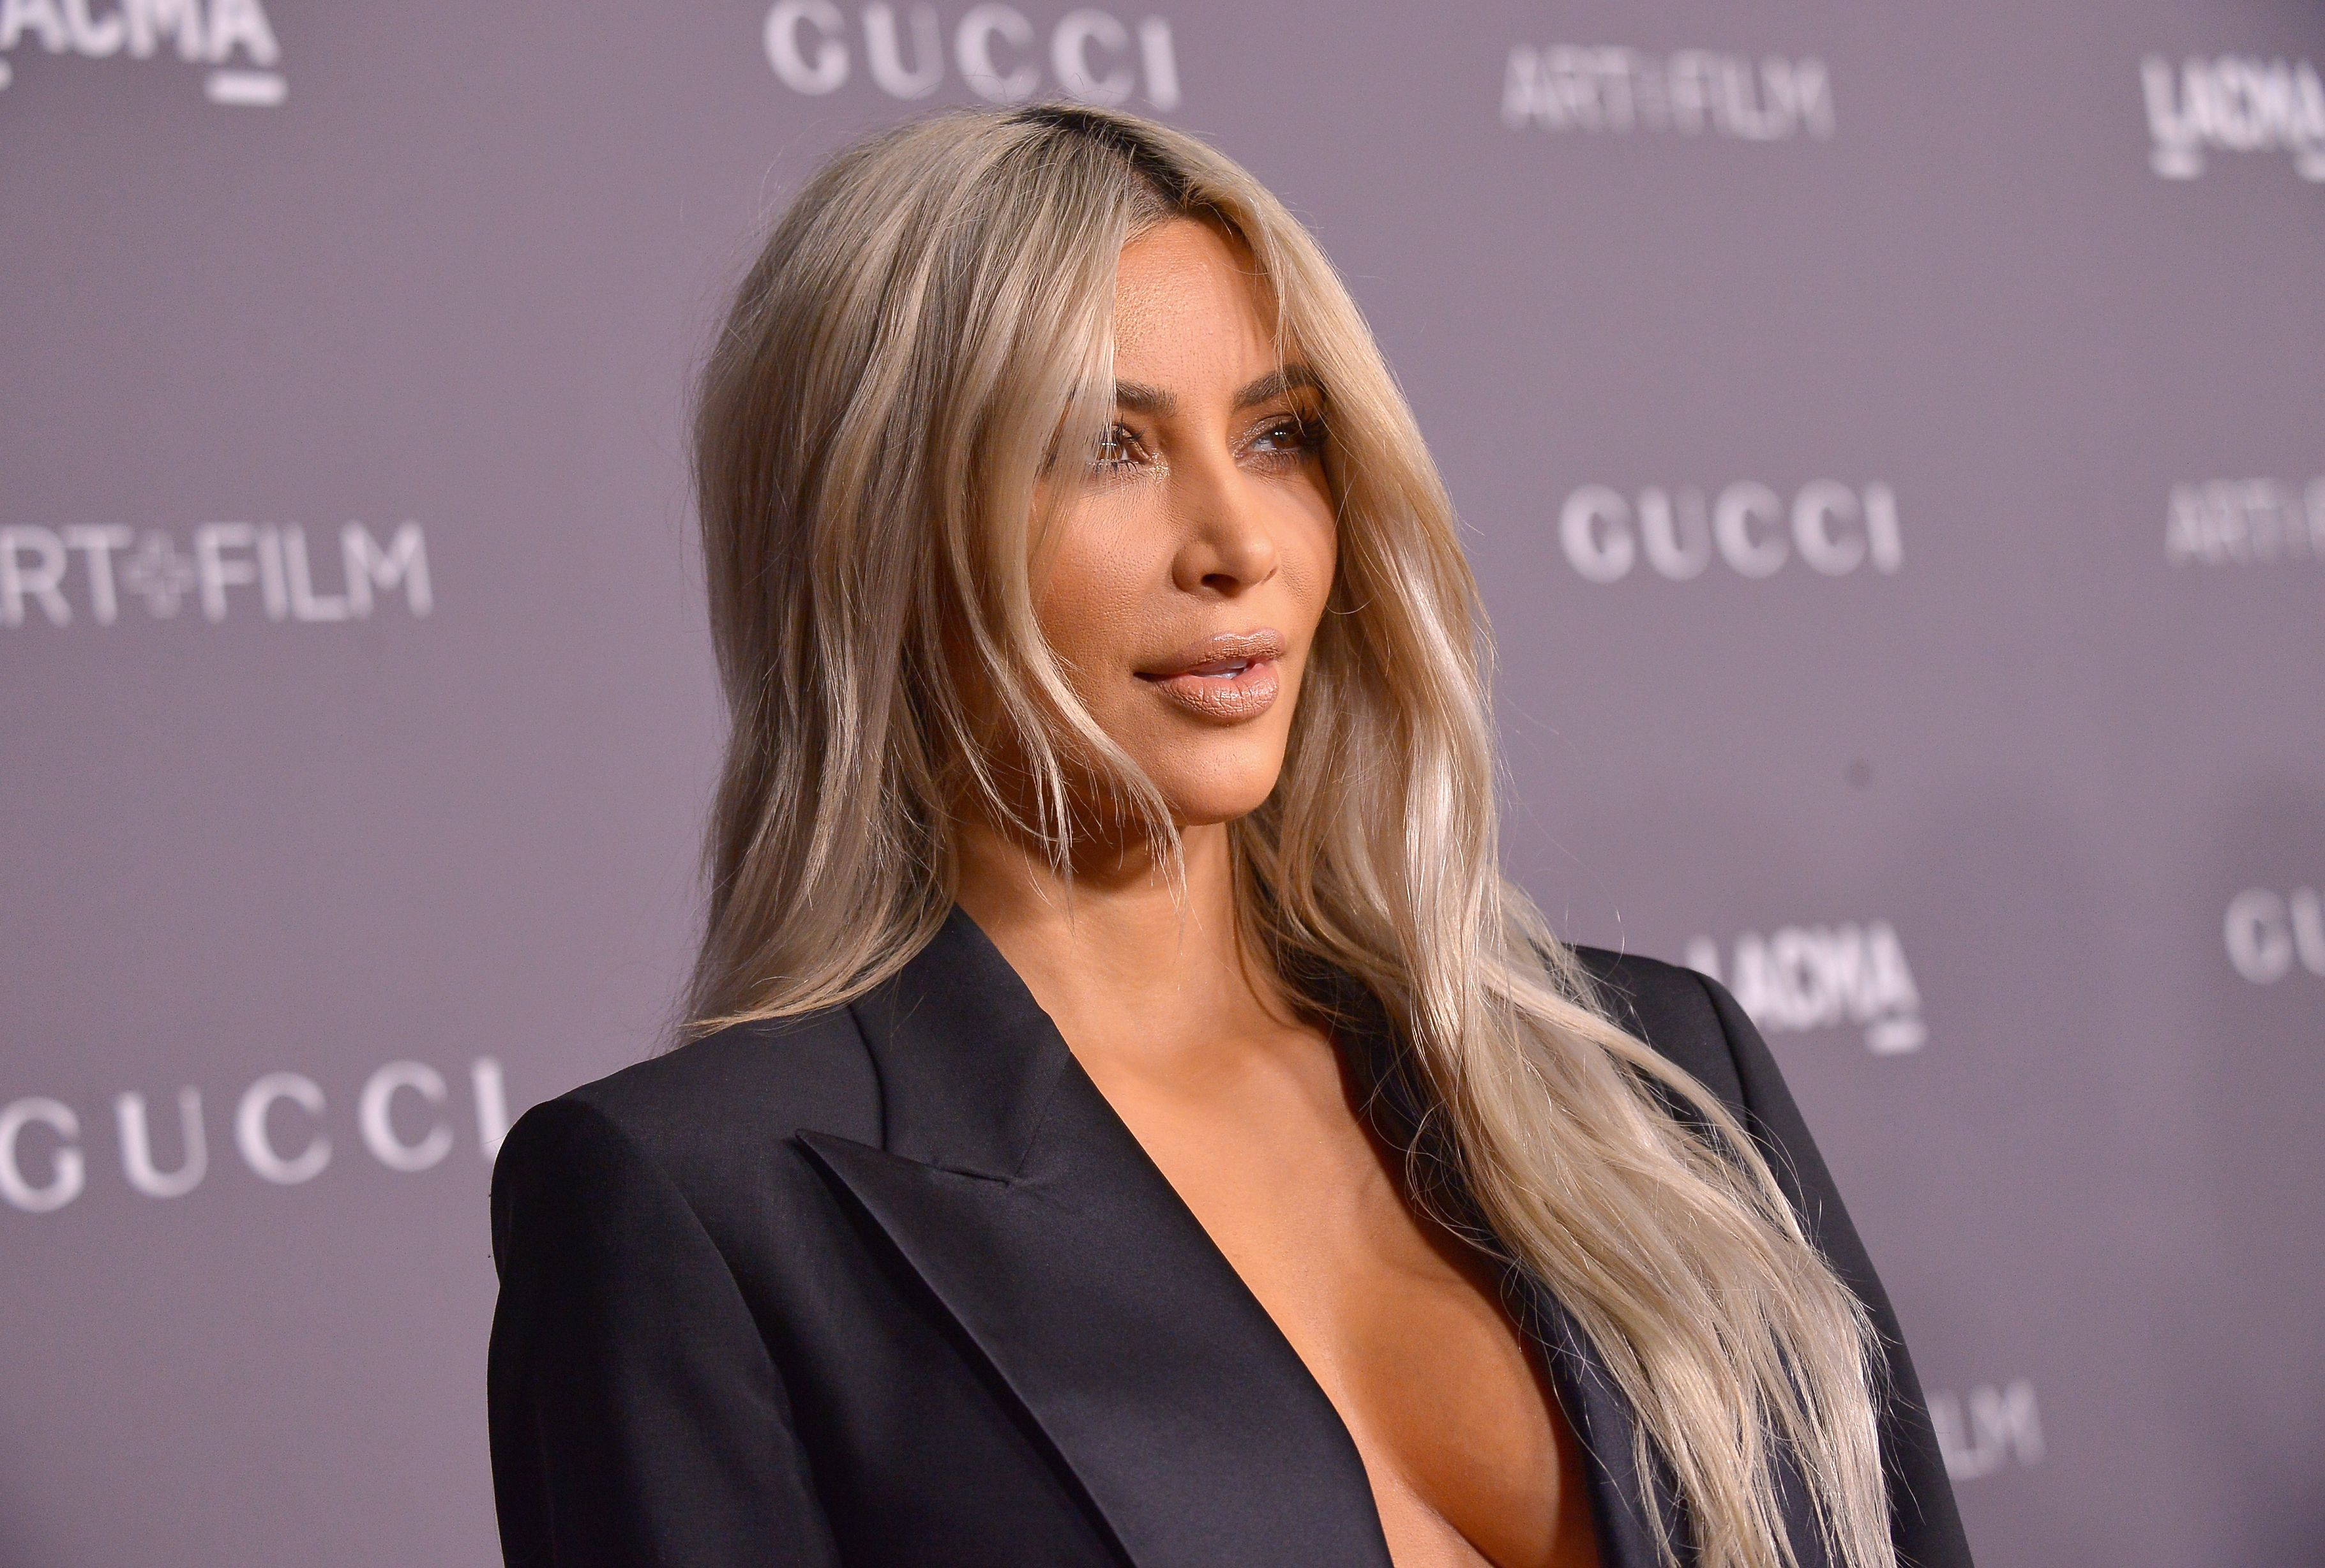 Kim Kardashian West at the 2017 LACMA Art + Film Gala Honoring Mark Bradford and George Lucas presented by Gucci at LACMA on November 4, 2017 | Photo: Getty Images